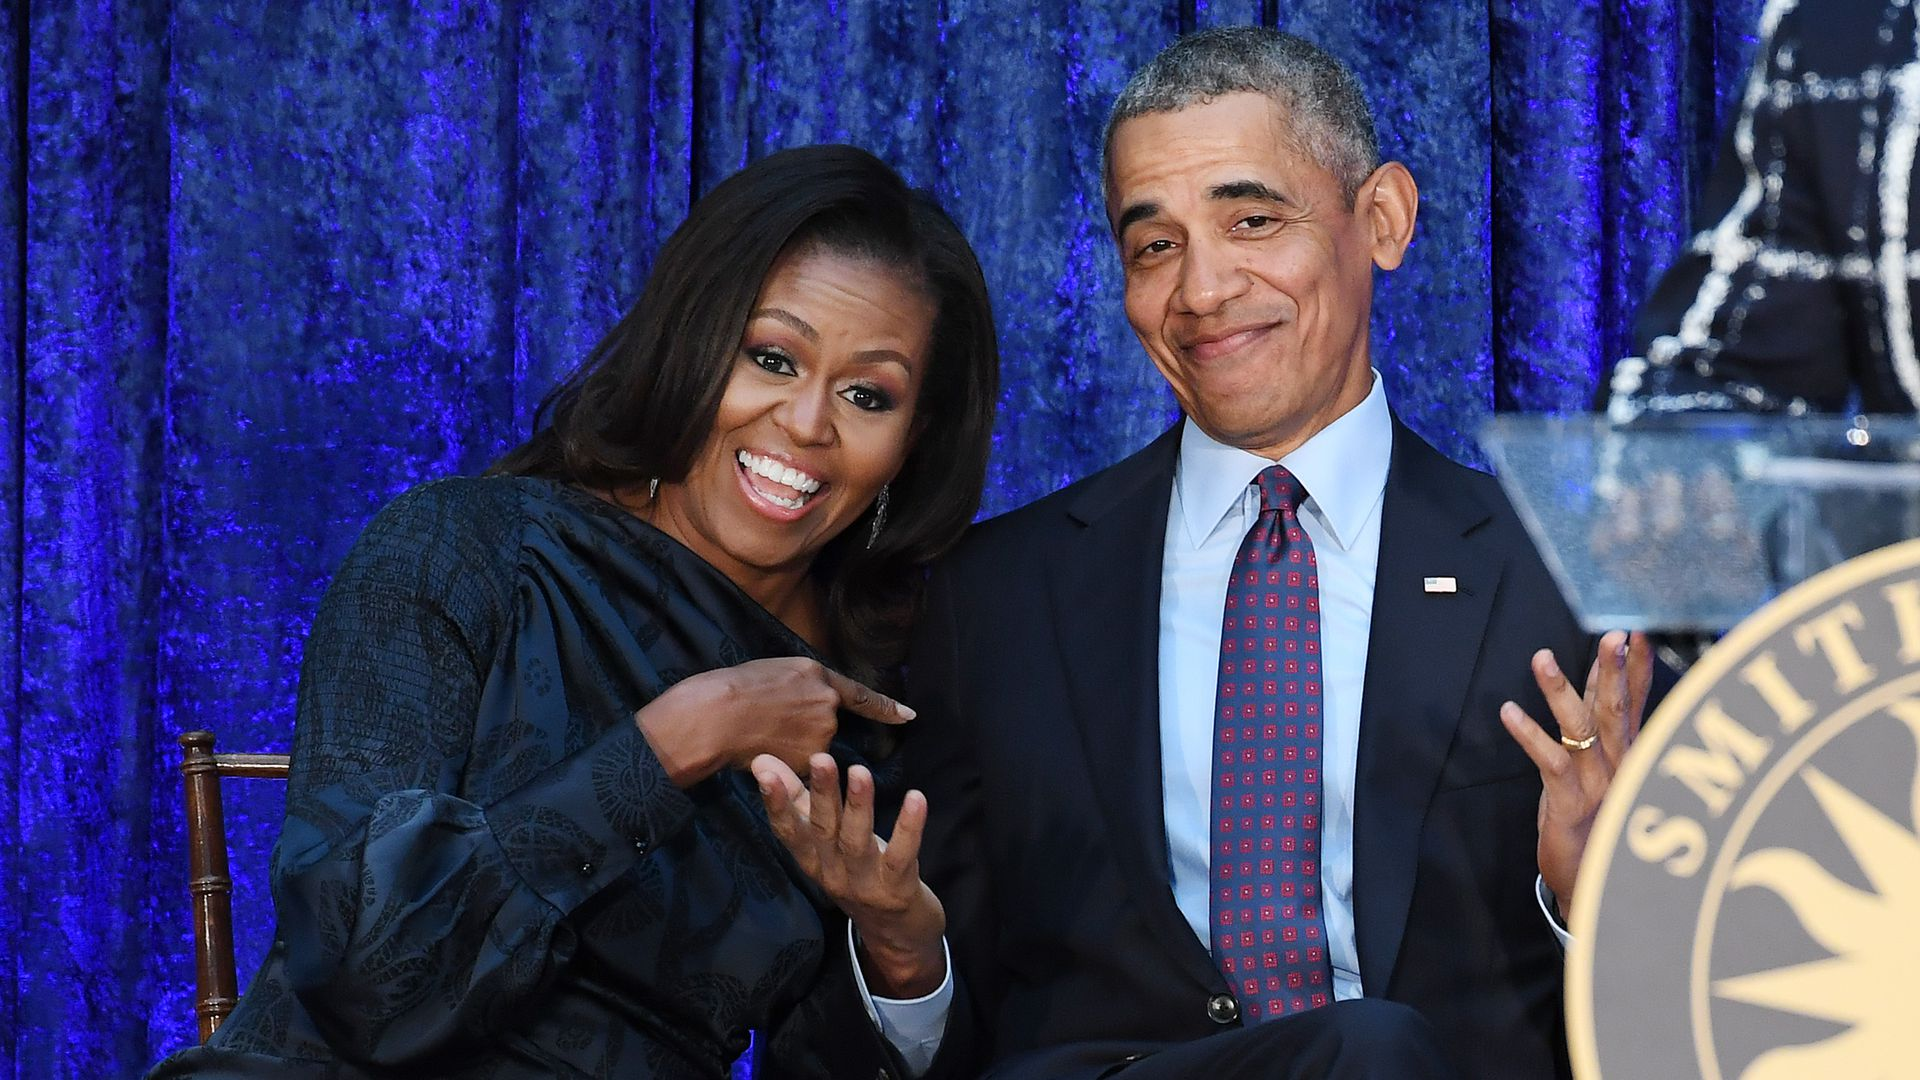 Former First Lady Michelle Obama and former President Barack Obama.